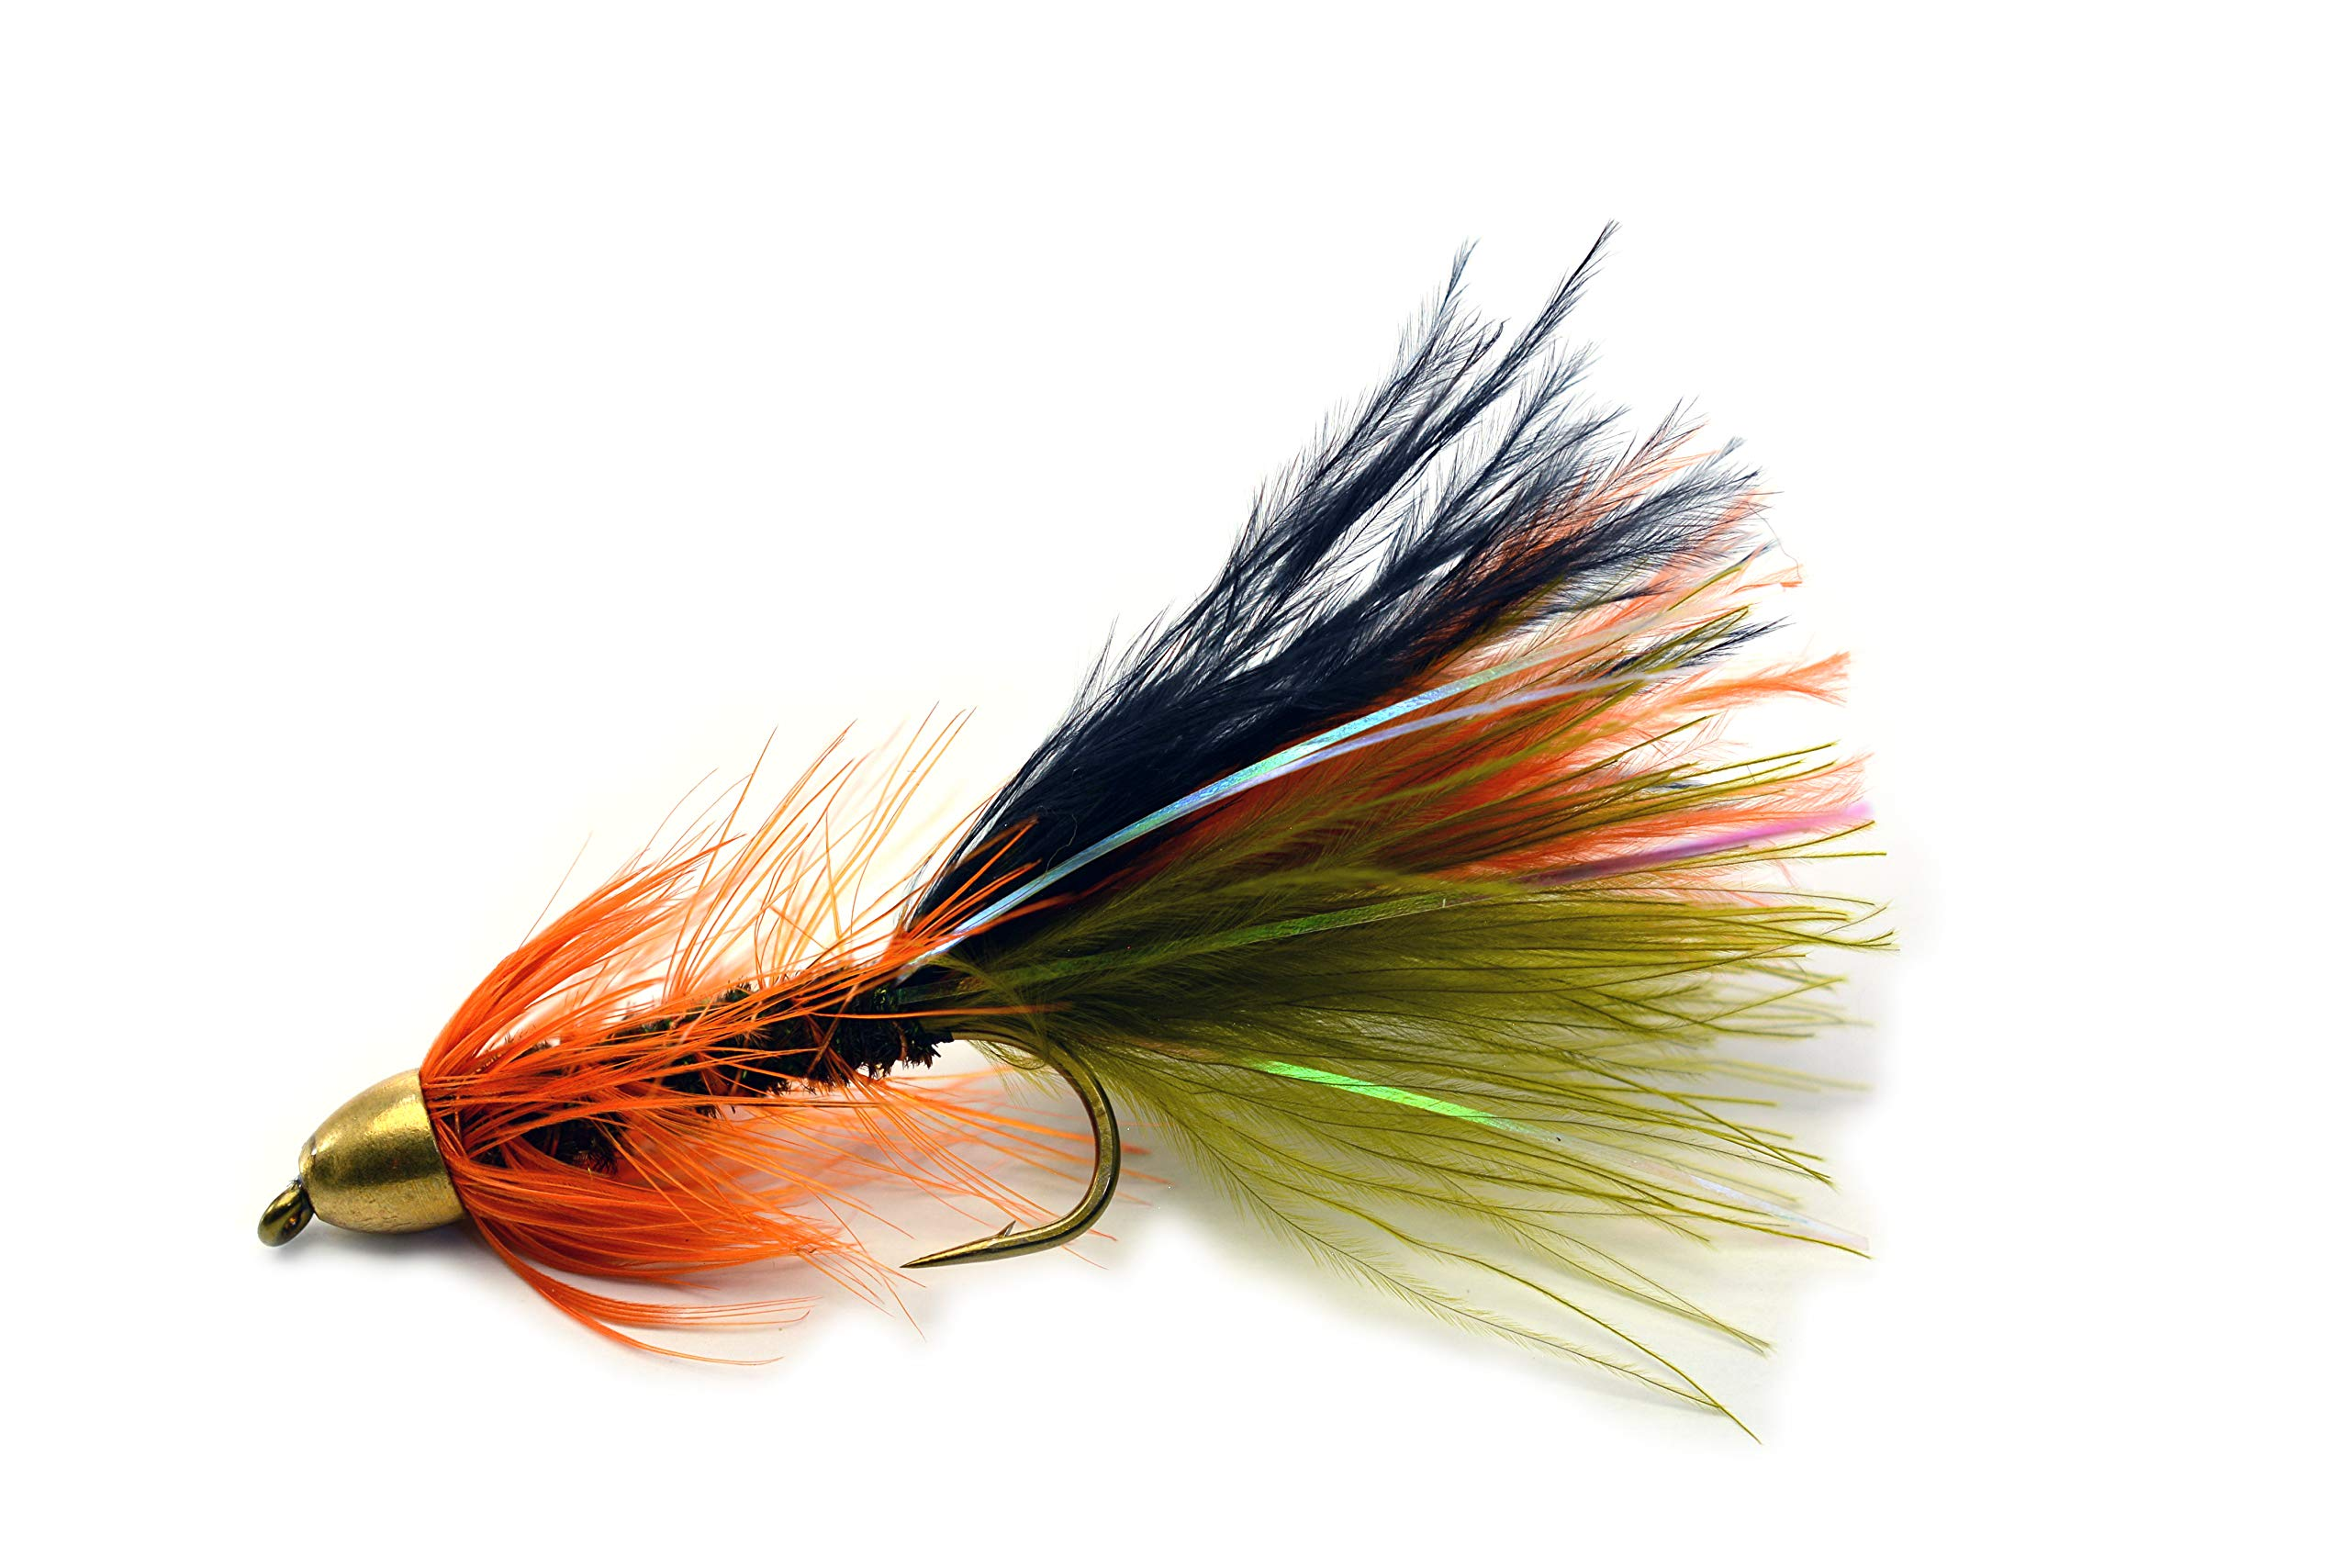 Thin Mint Streamer Fly Fishing Flies - Cone Head - Weighted - Mustad Signature Hooks - 1 Dozen Flies in Hook #6, 8 or Assorted - Trout Flies (Hook #10) by Region Fishing